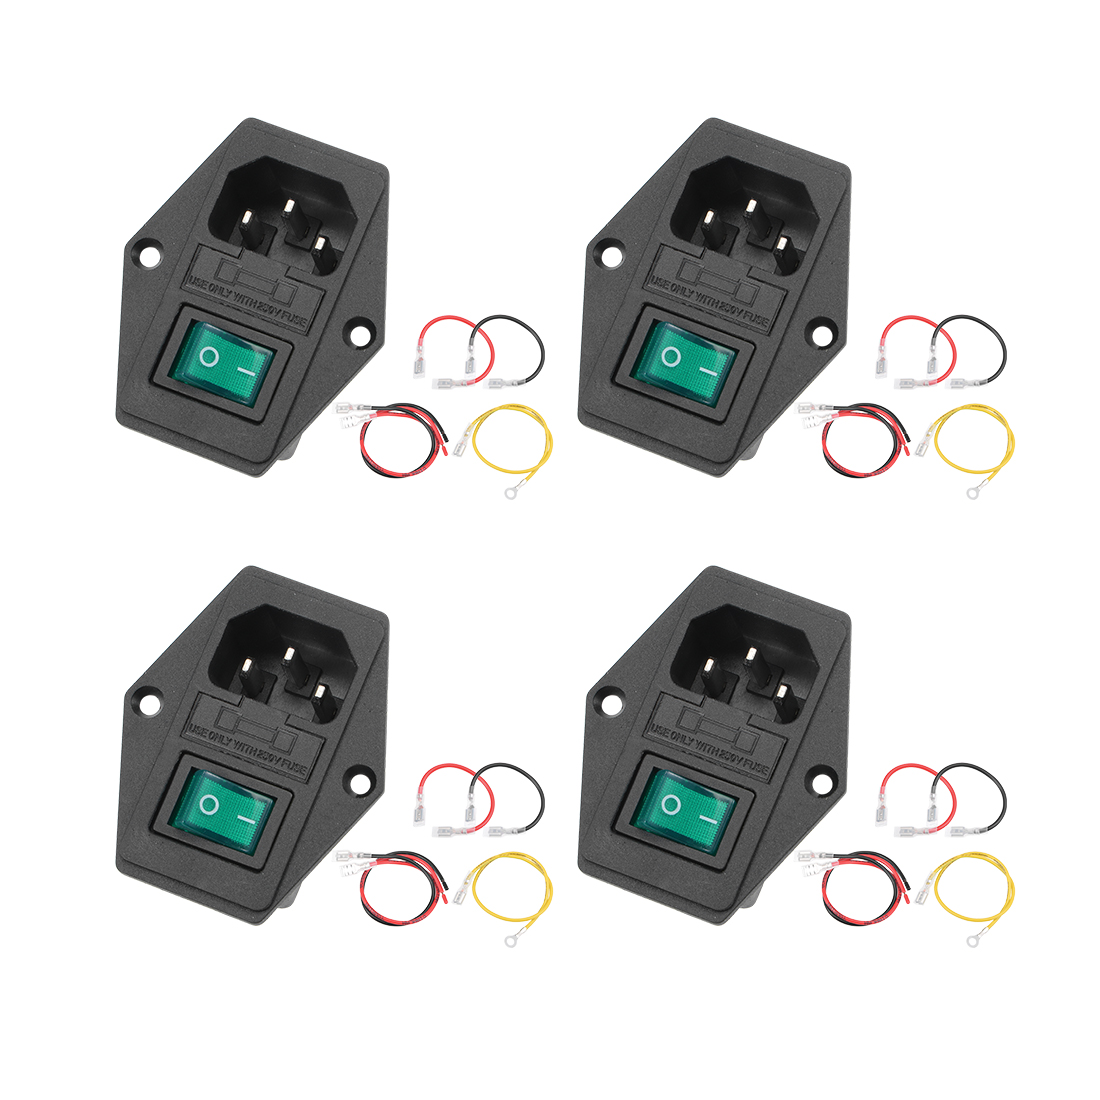 4Set 59x49x30mm Male Plug 4Pin 2Position GreenLED Switch with 110 200 260mm Wire